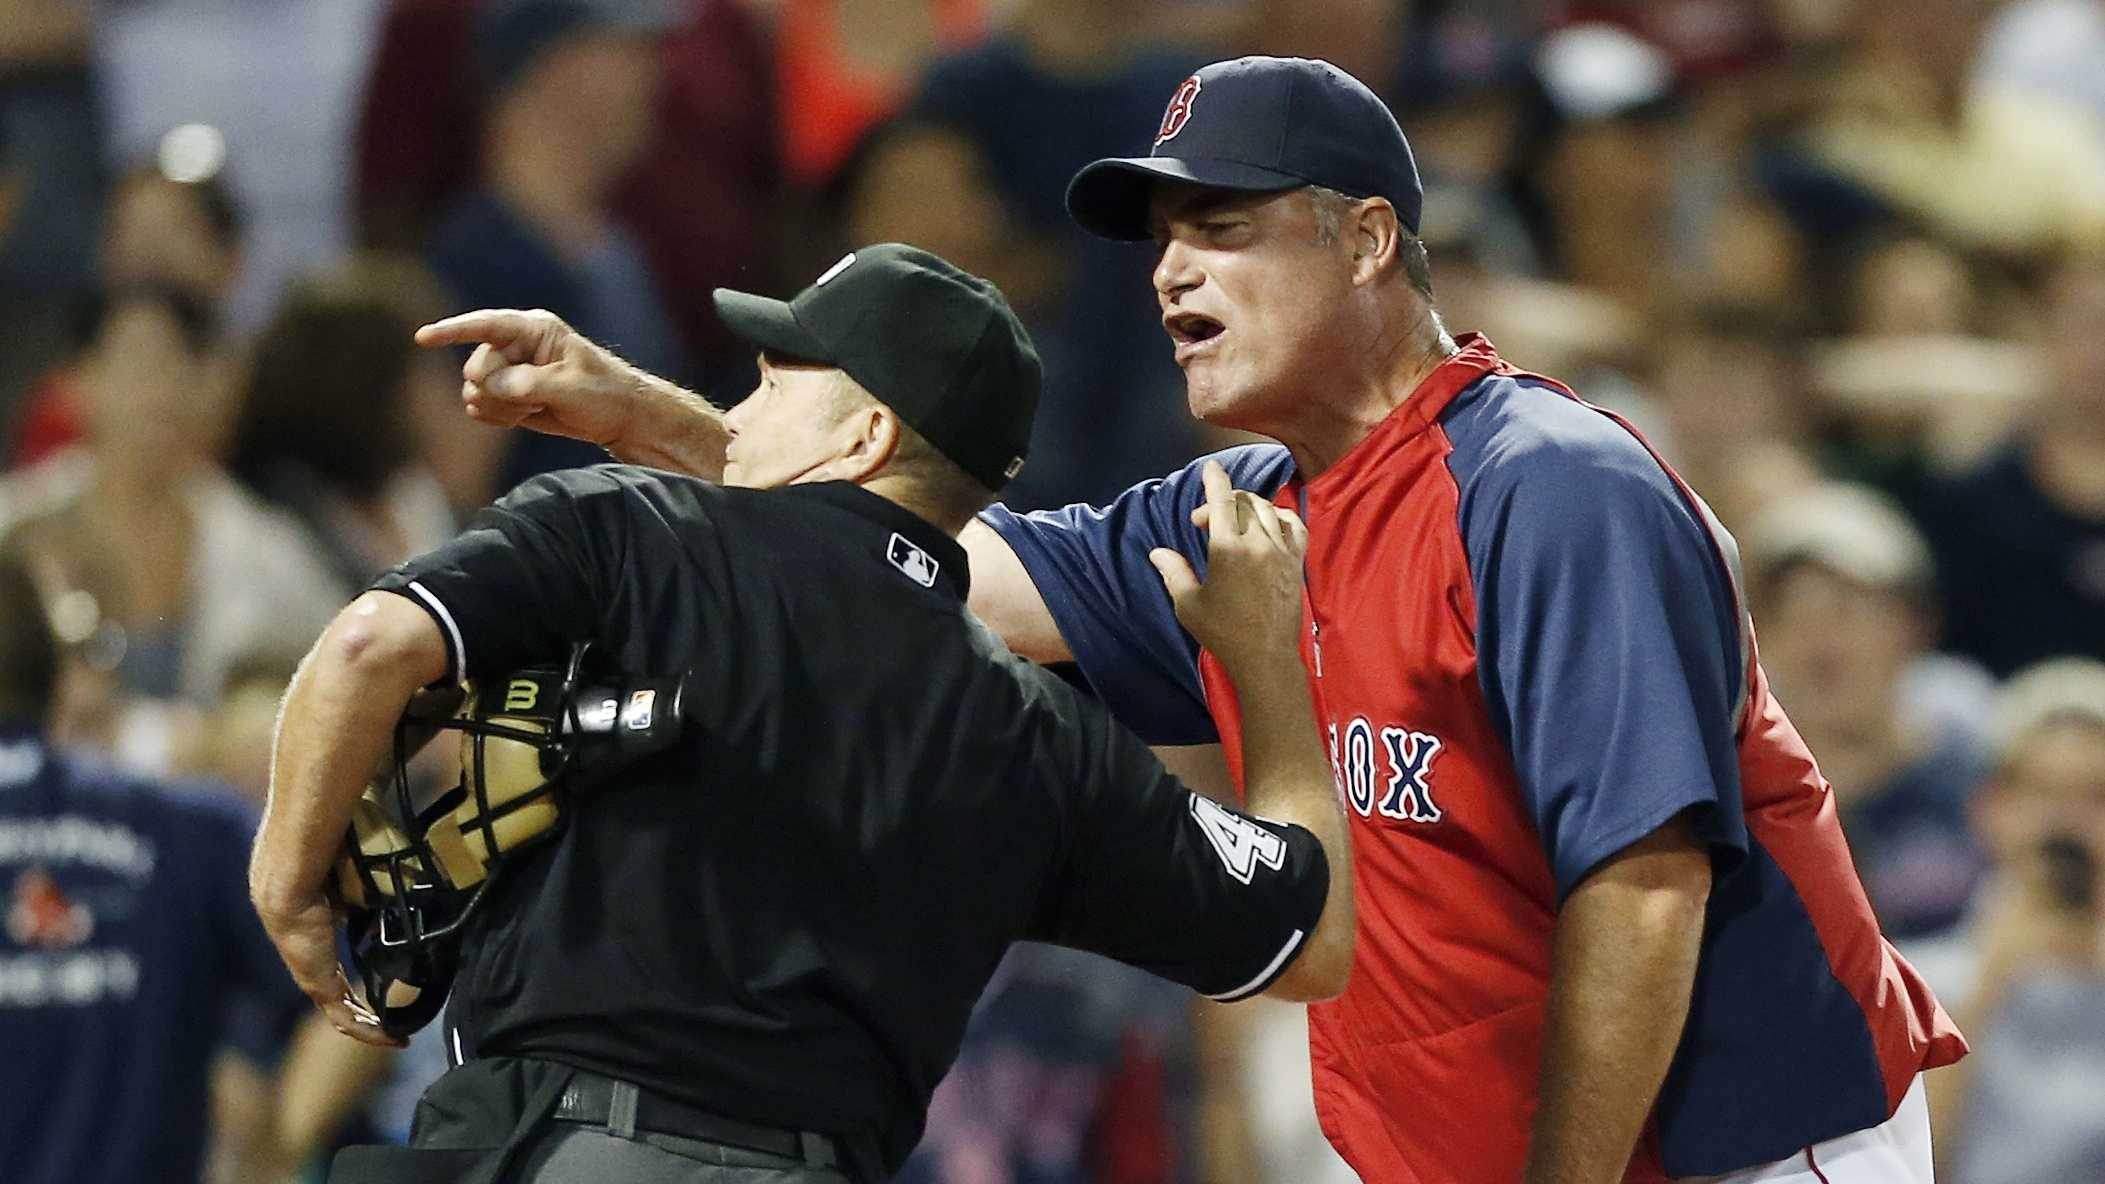 Home plate umpire Jerry Meals, left, ejects Boston Red Sox manager John Farrell in the eighth inning of a baseball game against the Tampa Bay Rays in Boston, Monday, July 29, 2013. The Rays won 2-1.